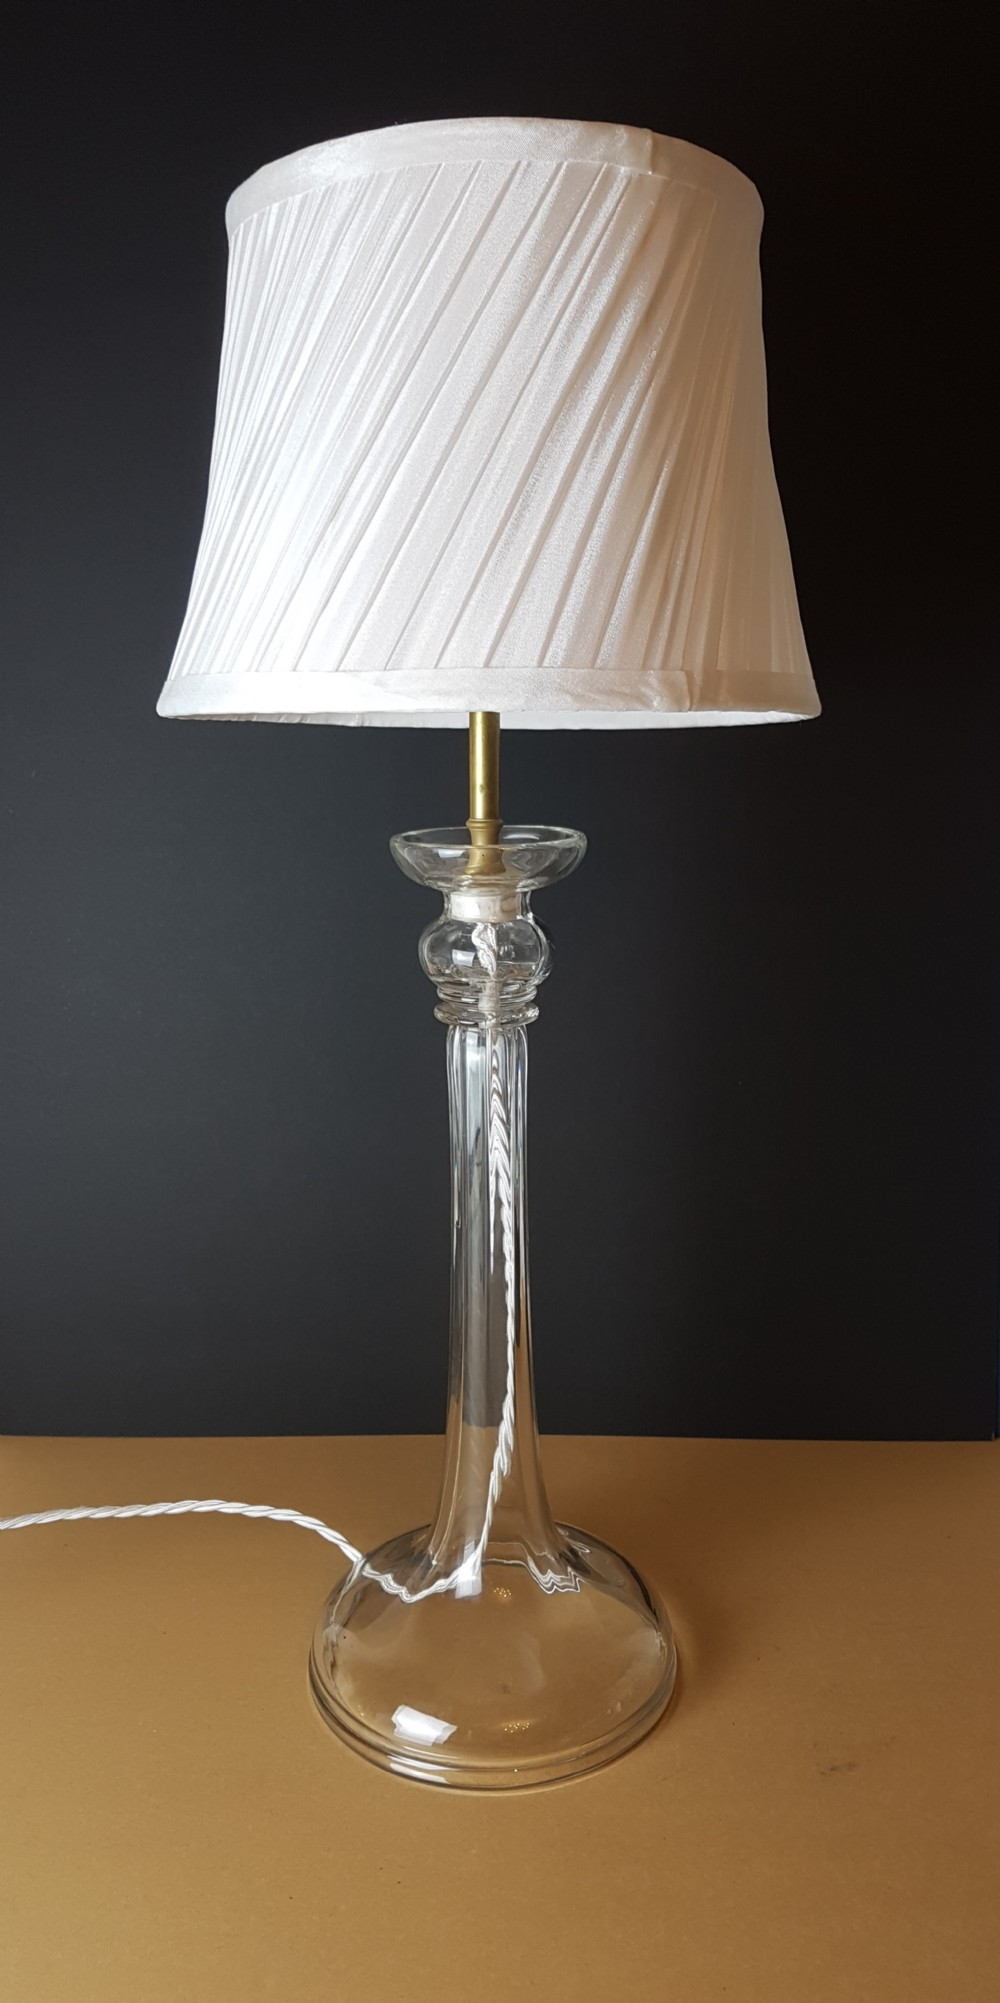 Rewire a table lamp uk image collections wiring table and diagram late victorian glass stem table lamp rewired and pat tested late victorian glass stem table lamp keyboard keysfo Image collections